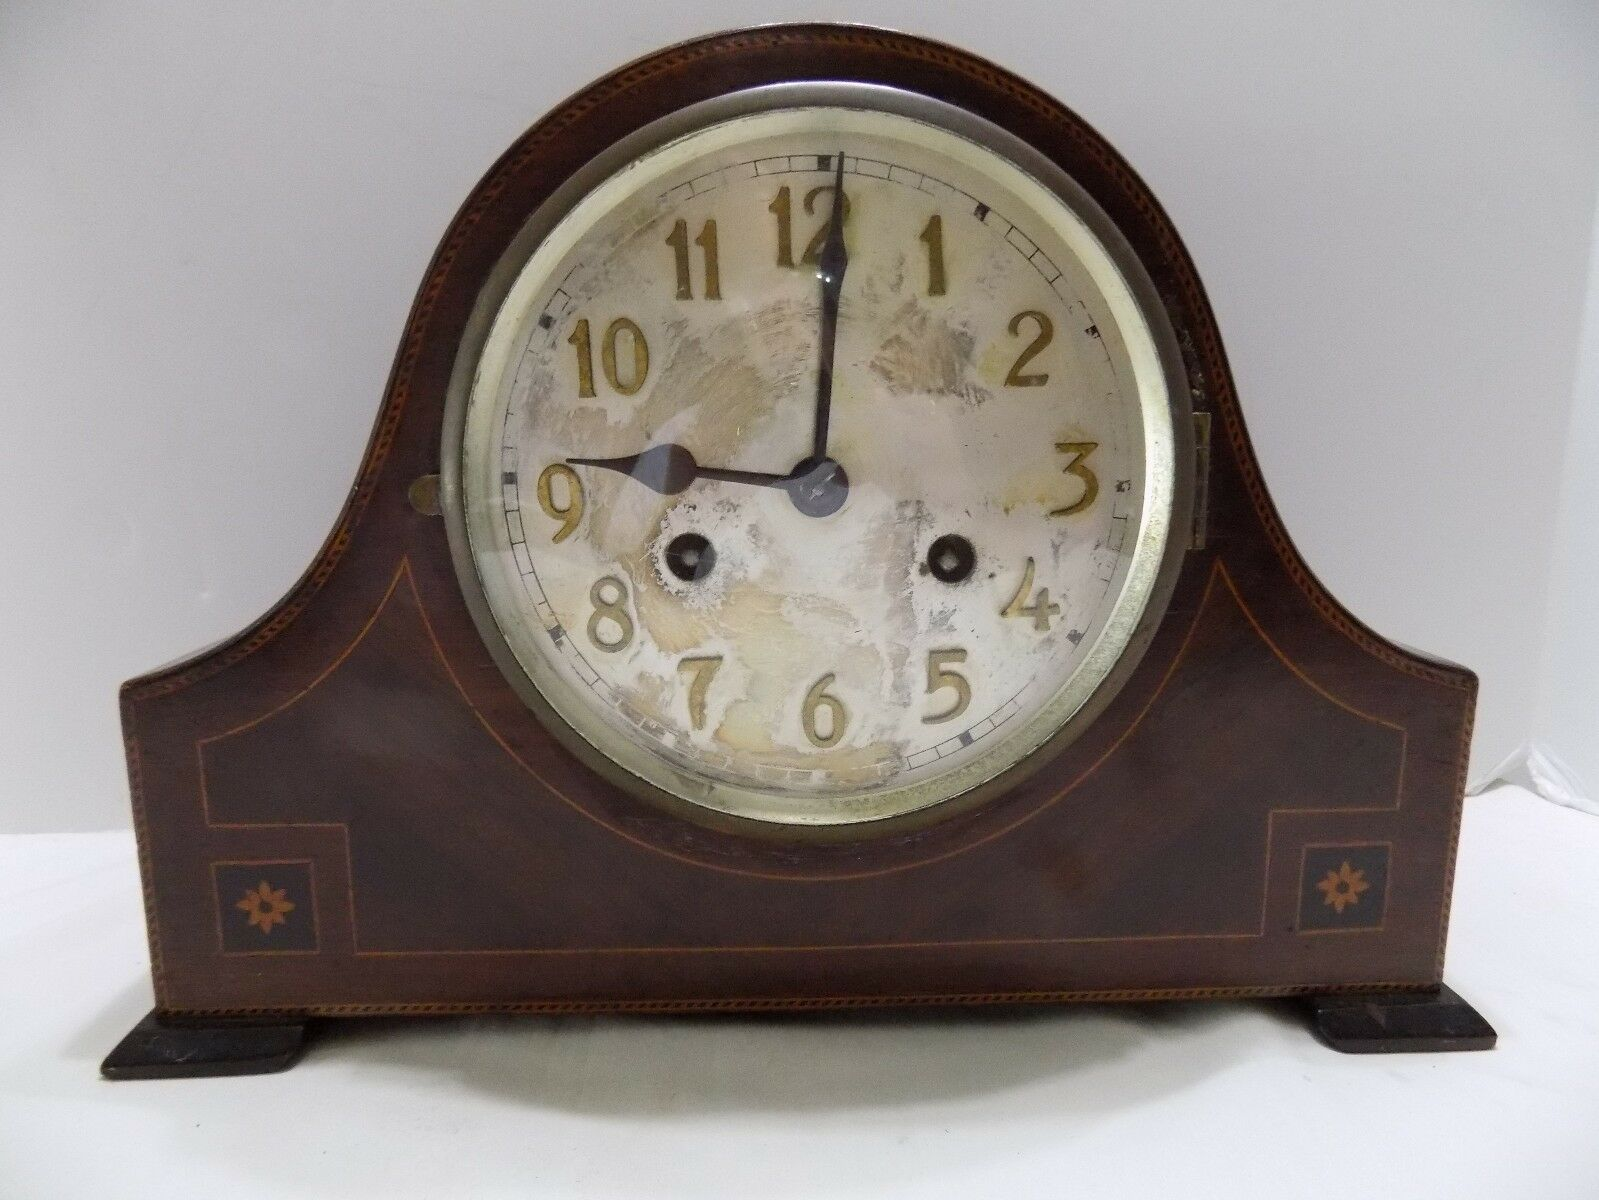 VIintage Enfield KEY WOUND MANTLE CLOCK  BROWN VENEER  CHIMES(RX-8)